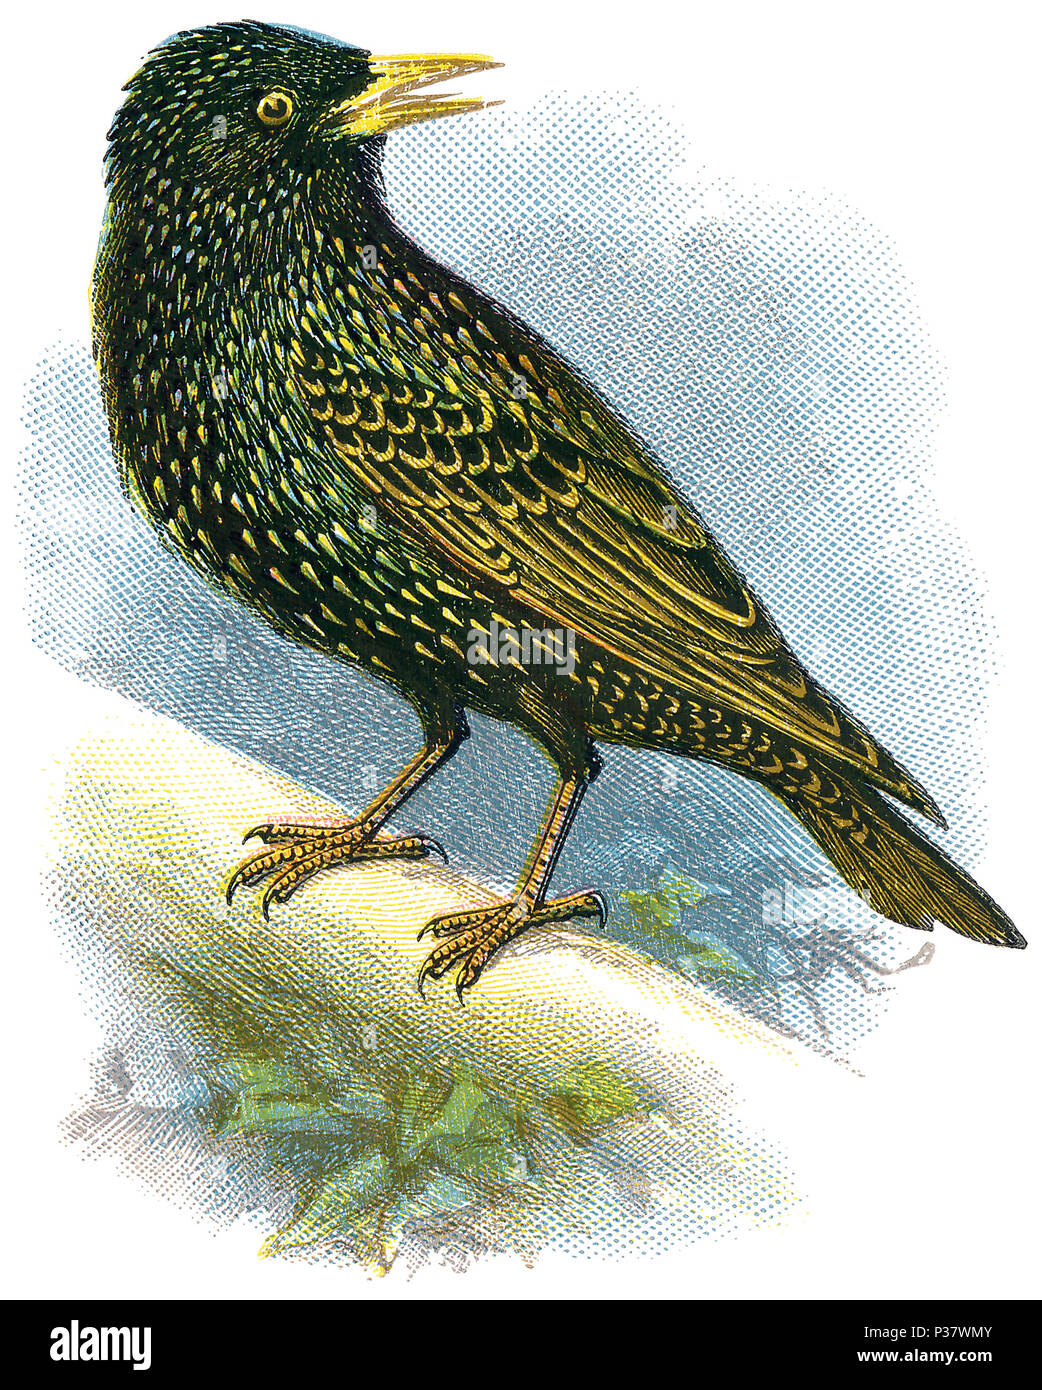 1898 colour engraving of a common starling or European starling (sturnus vulgaris). - Stock Image